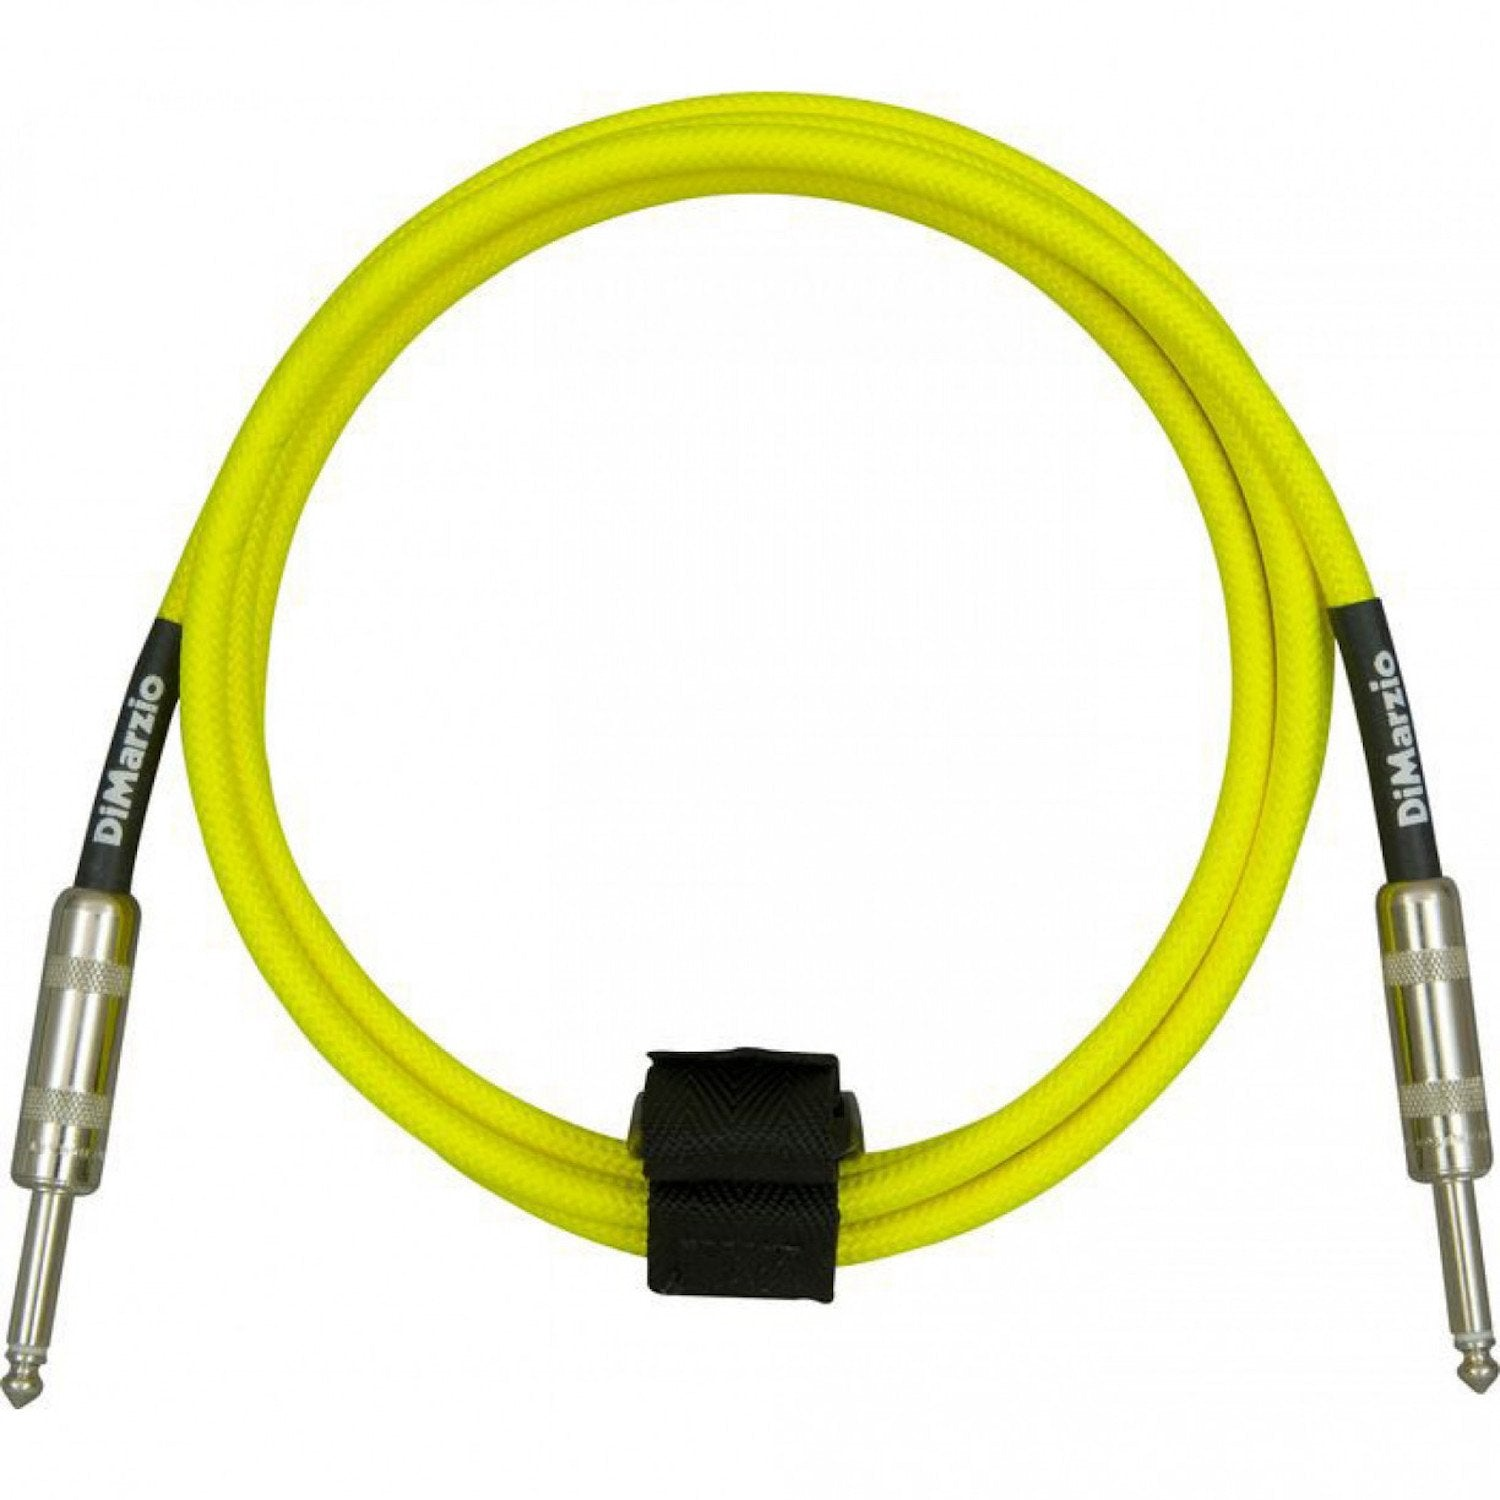 DiMarzio 10ft Braided Instrument Cable Neon Yellow